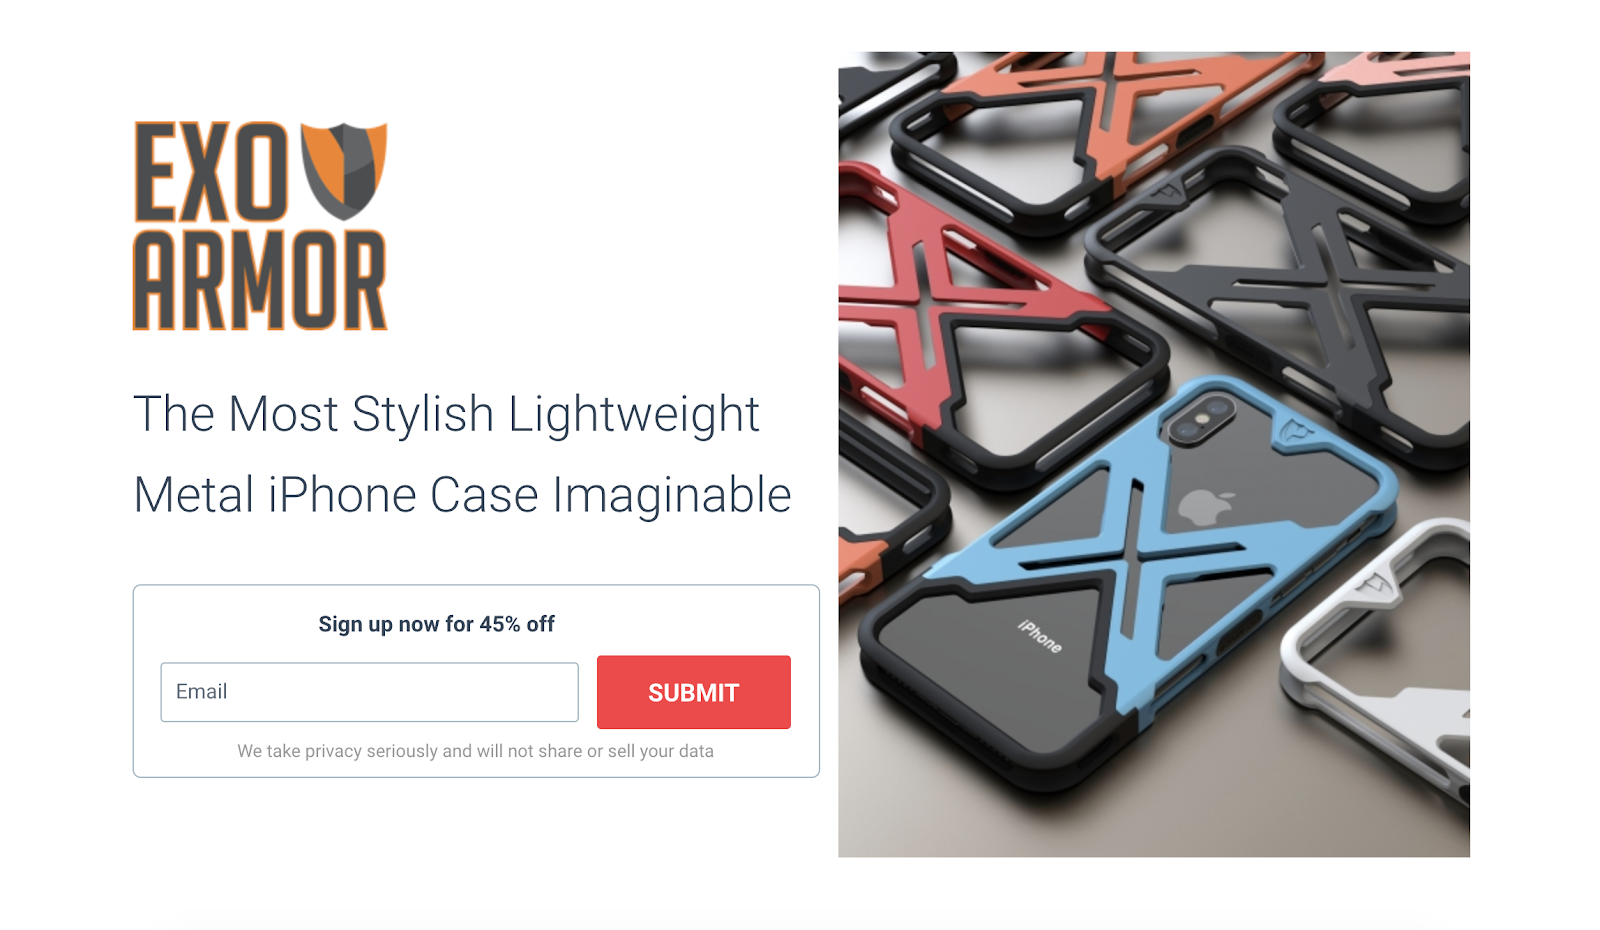 exoamor creather a landing page for crowdfunding that had the information on top